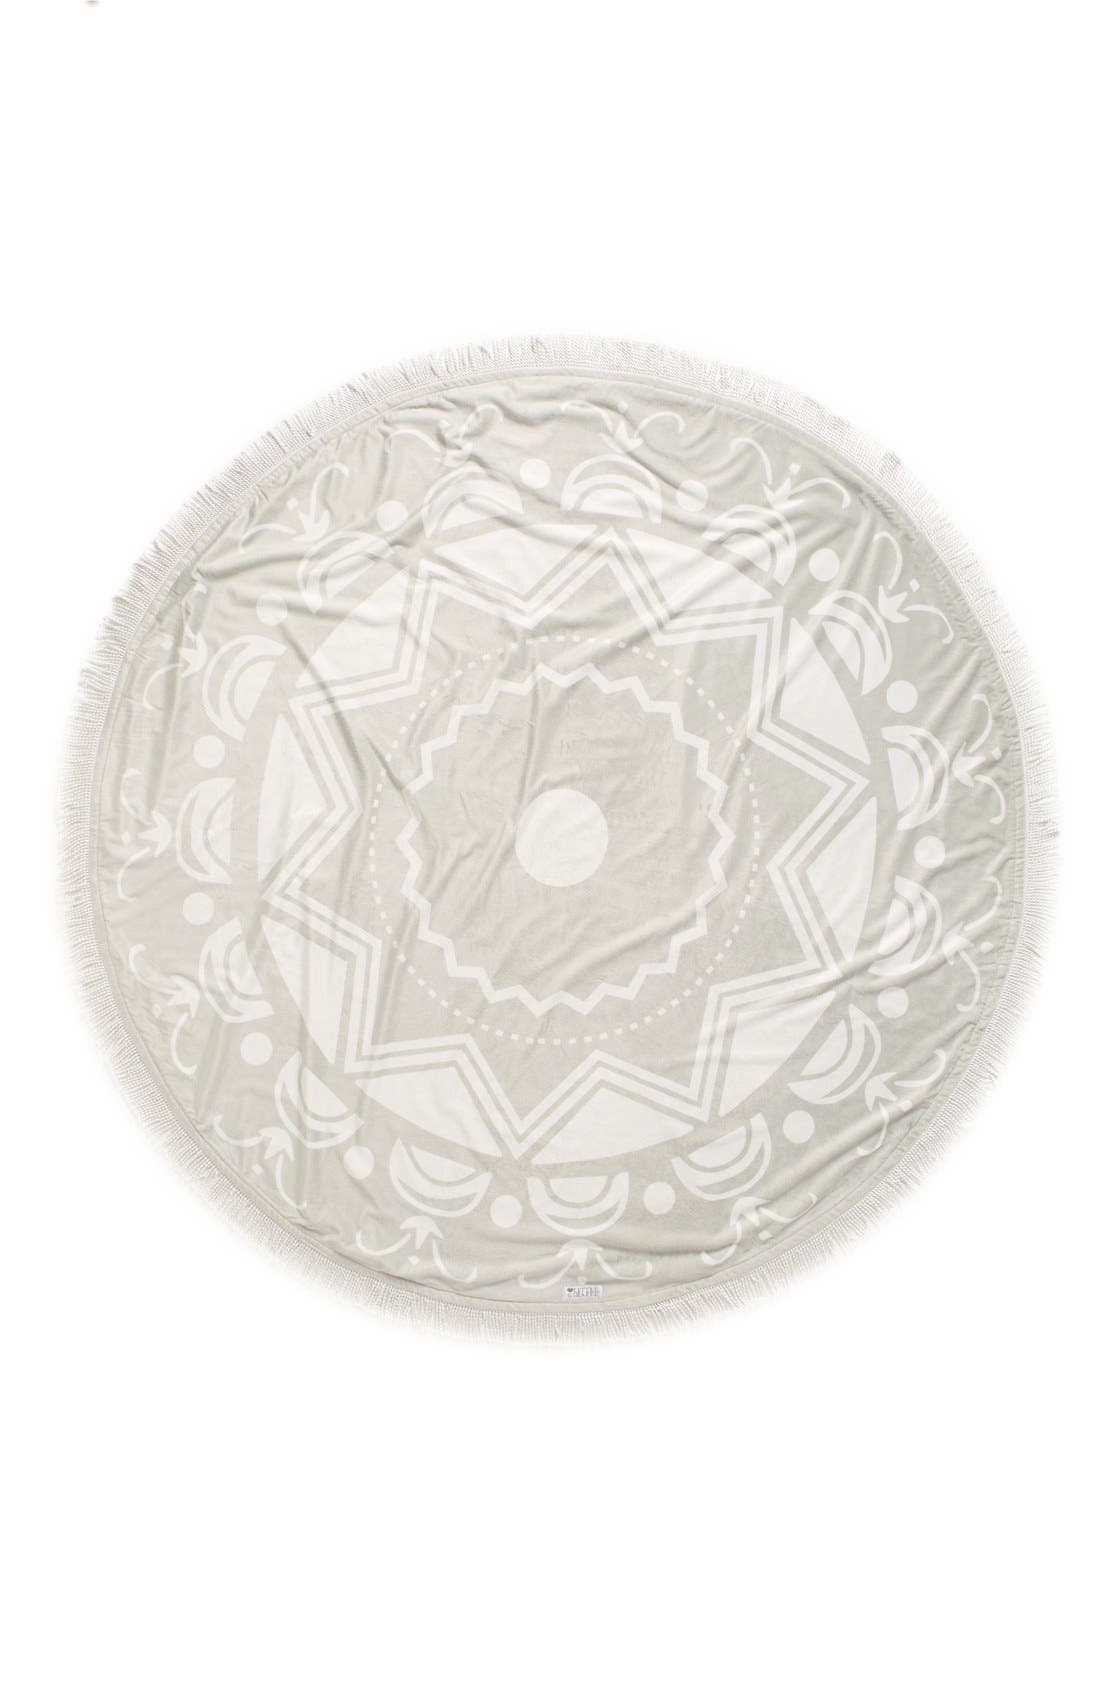 Bliss<sup>™</sup> Round Blanket,                             Alternate thumbnail 2, color,                             Silver